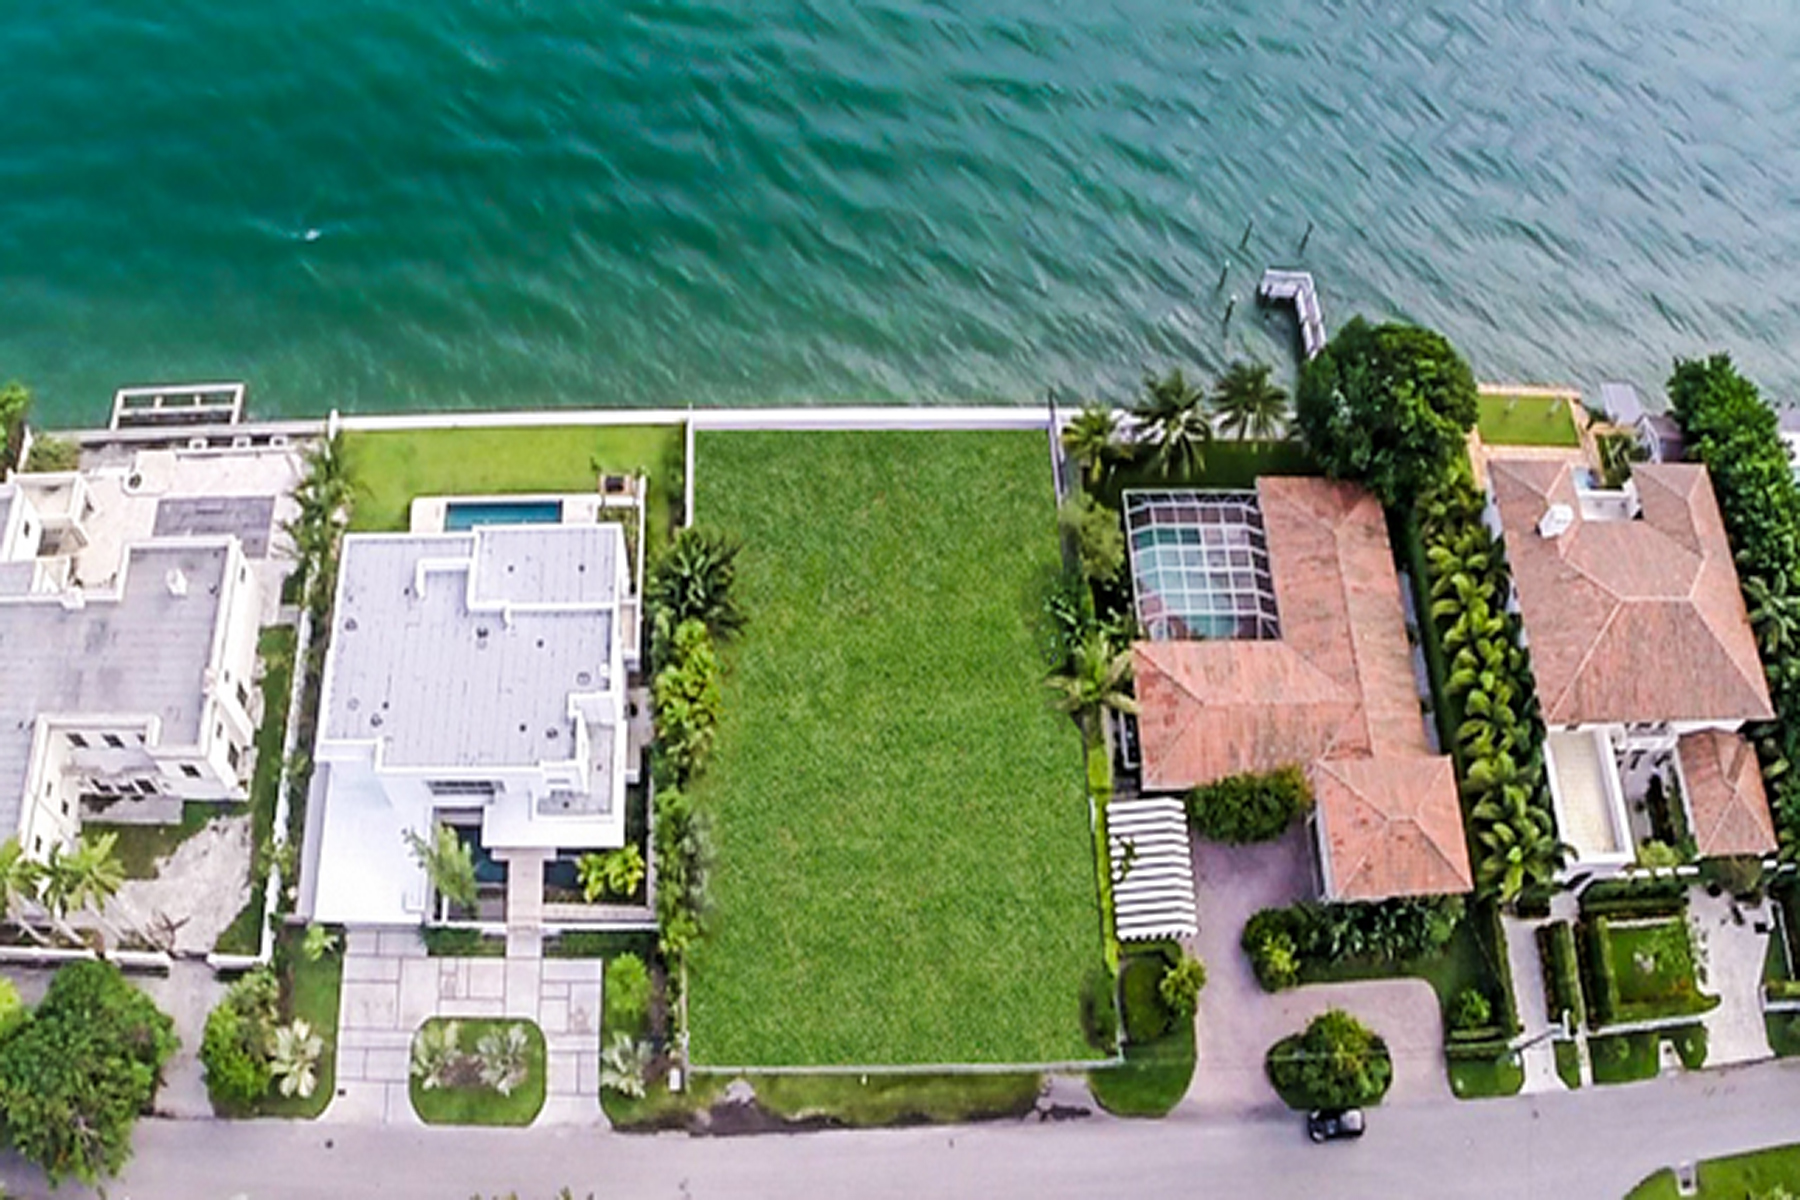 for Sale at 630 South Mashta Dr Key Biscayne, Florida 33149 United States